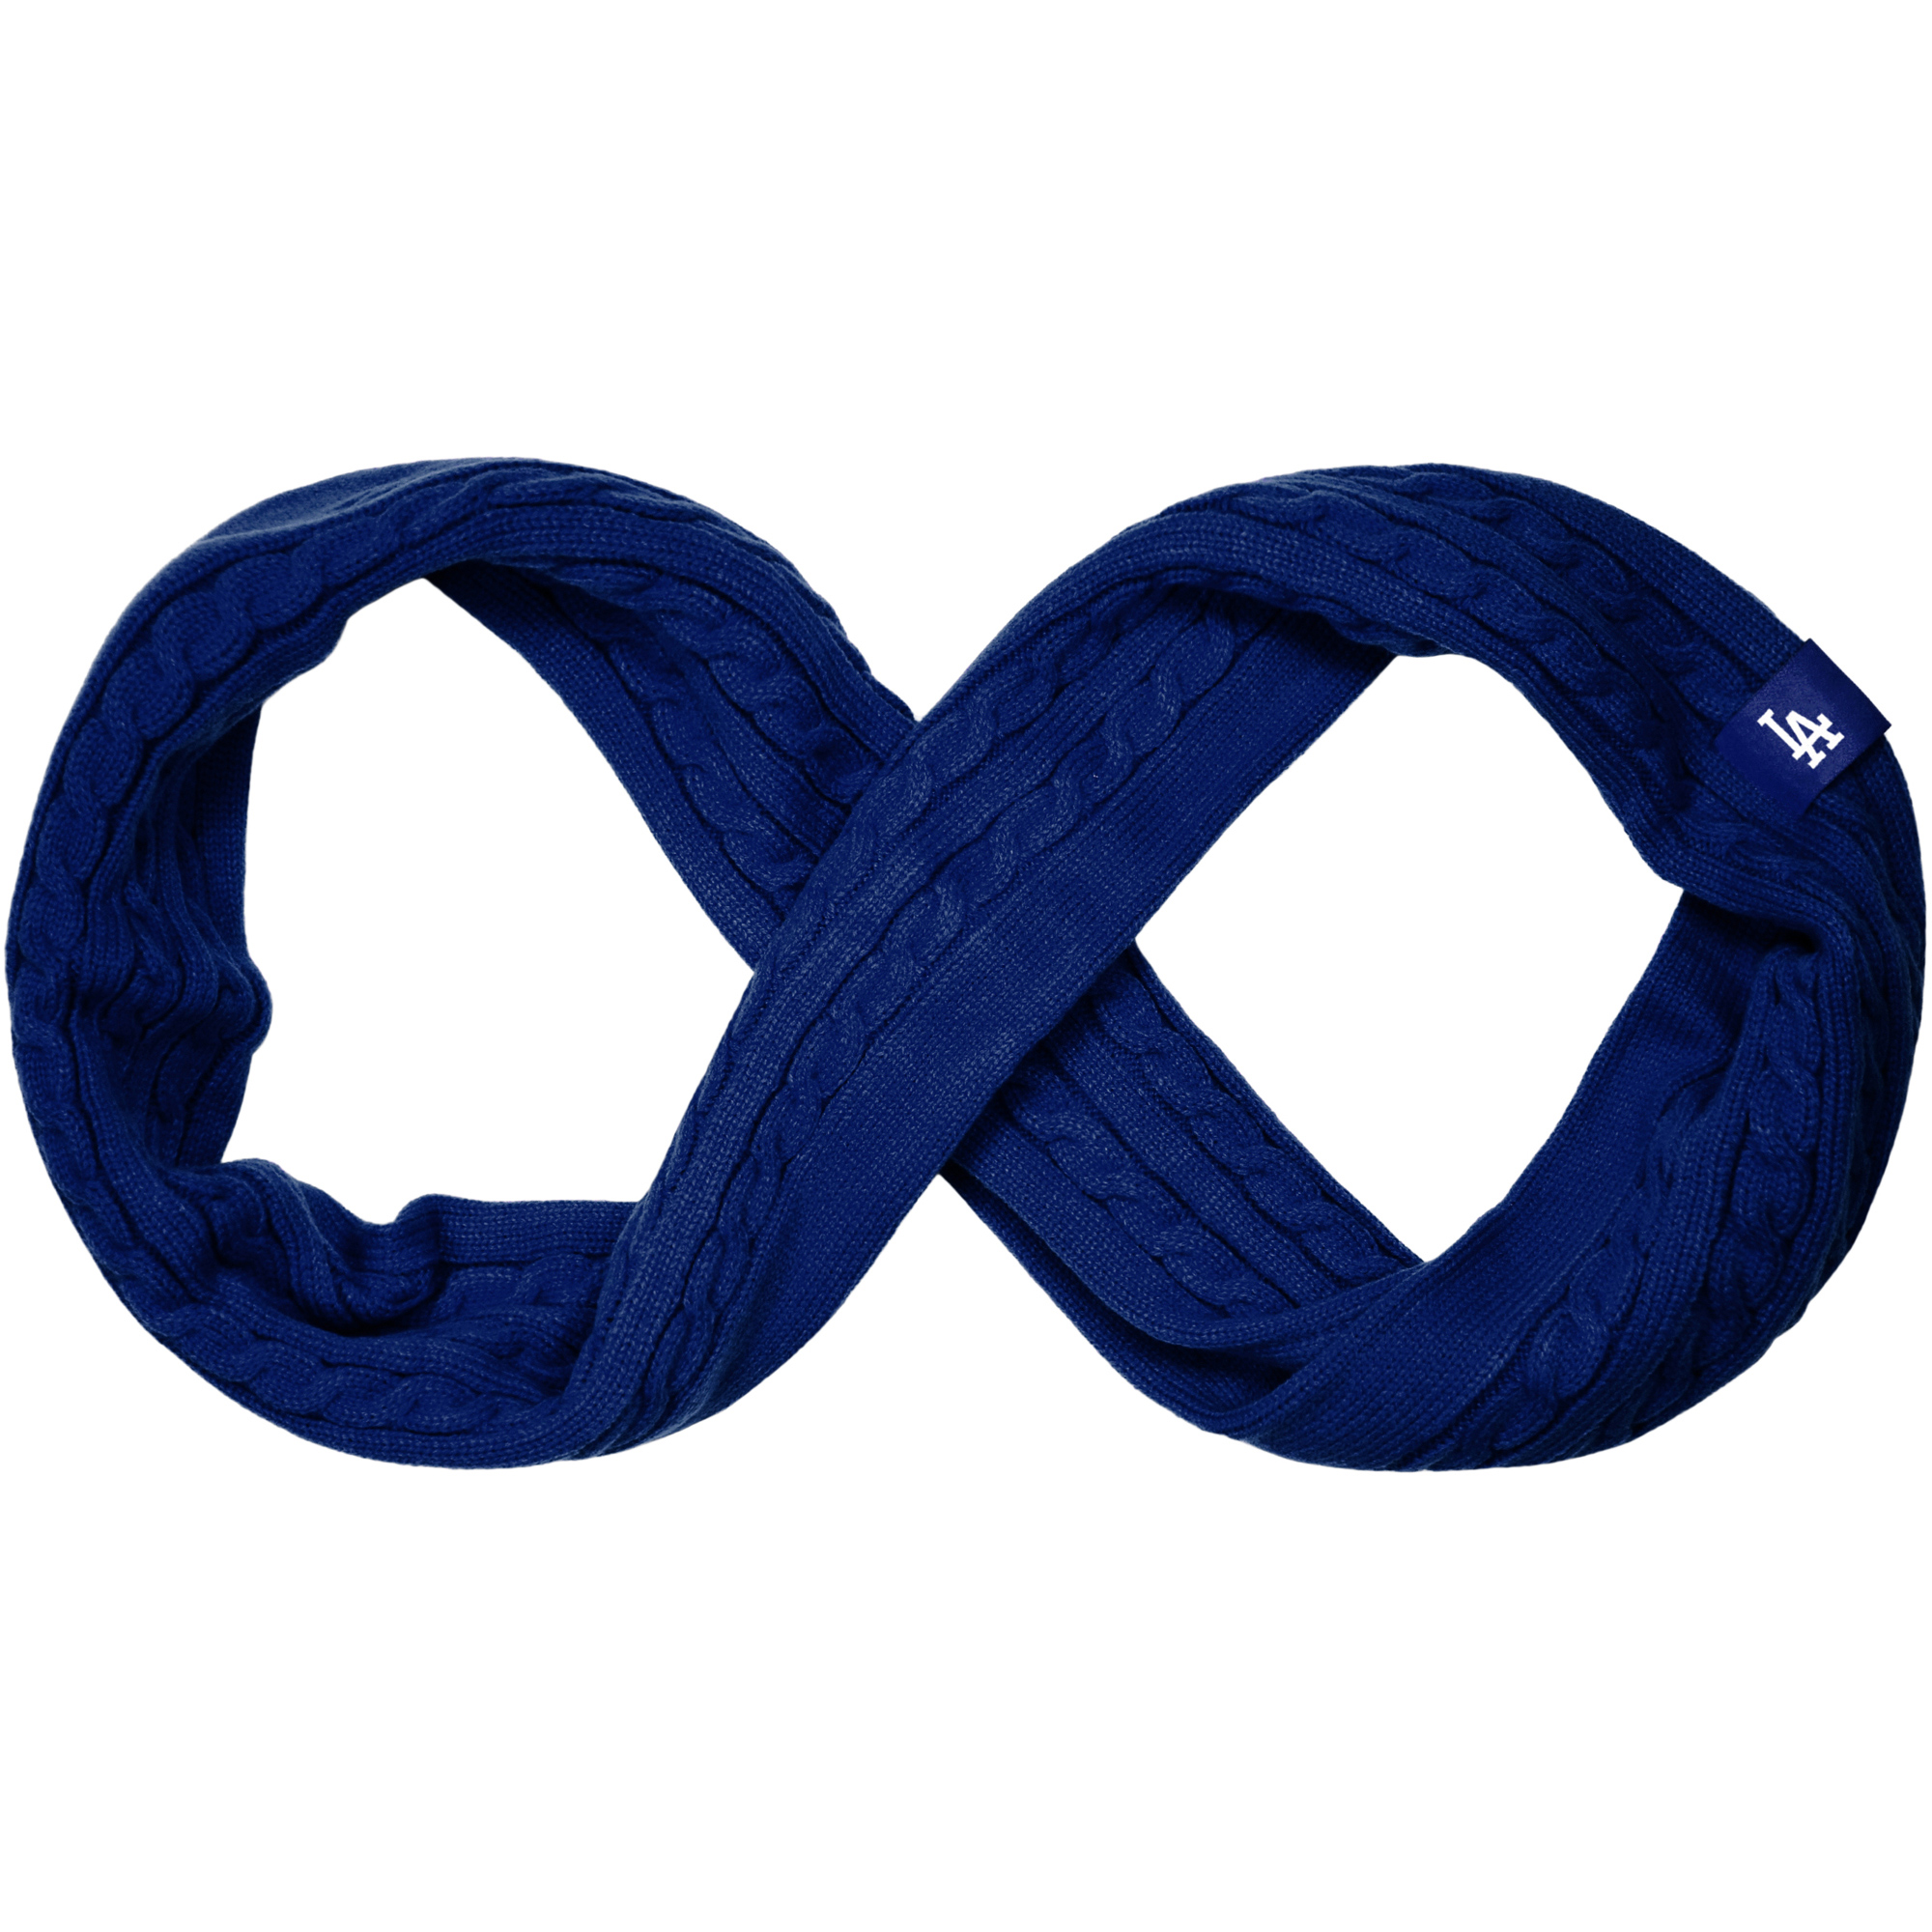 Los Angeles Dodgers Women's Cable Knit Infinity Scarf - Blue - No Size